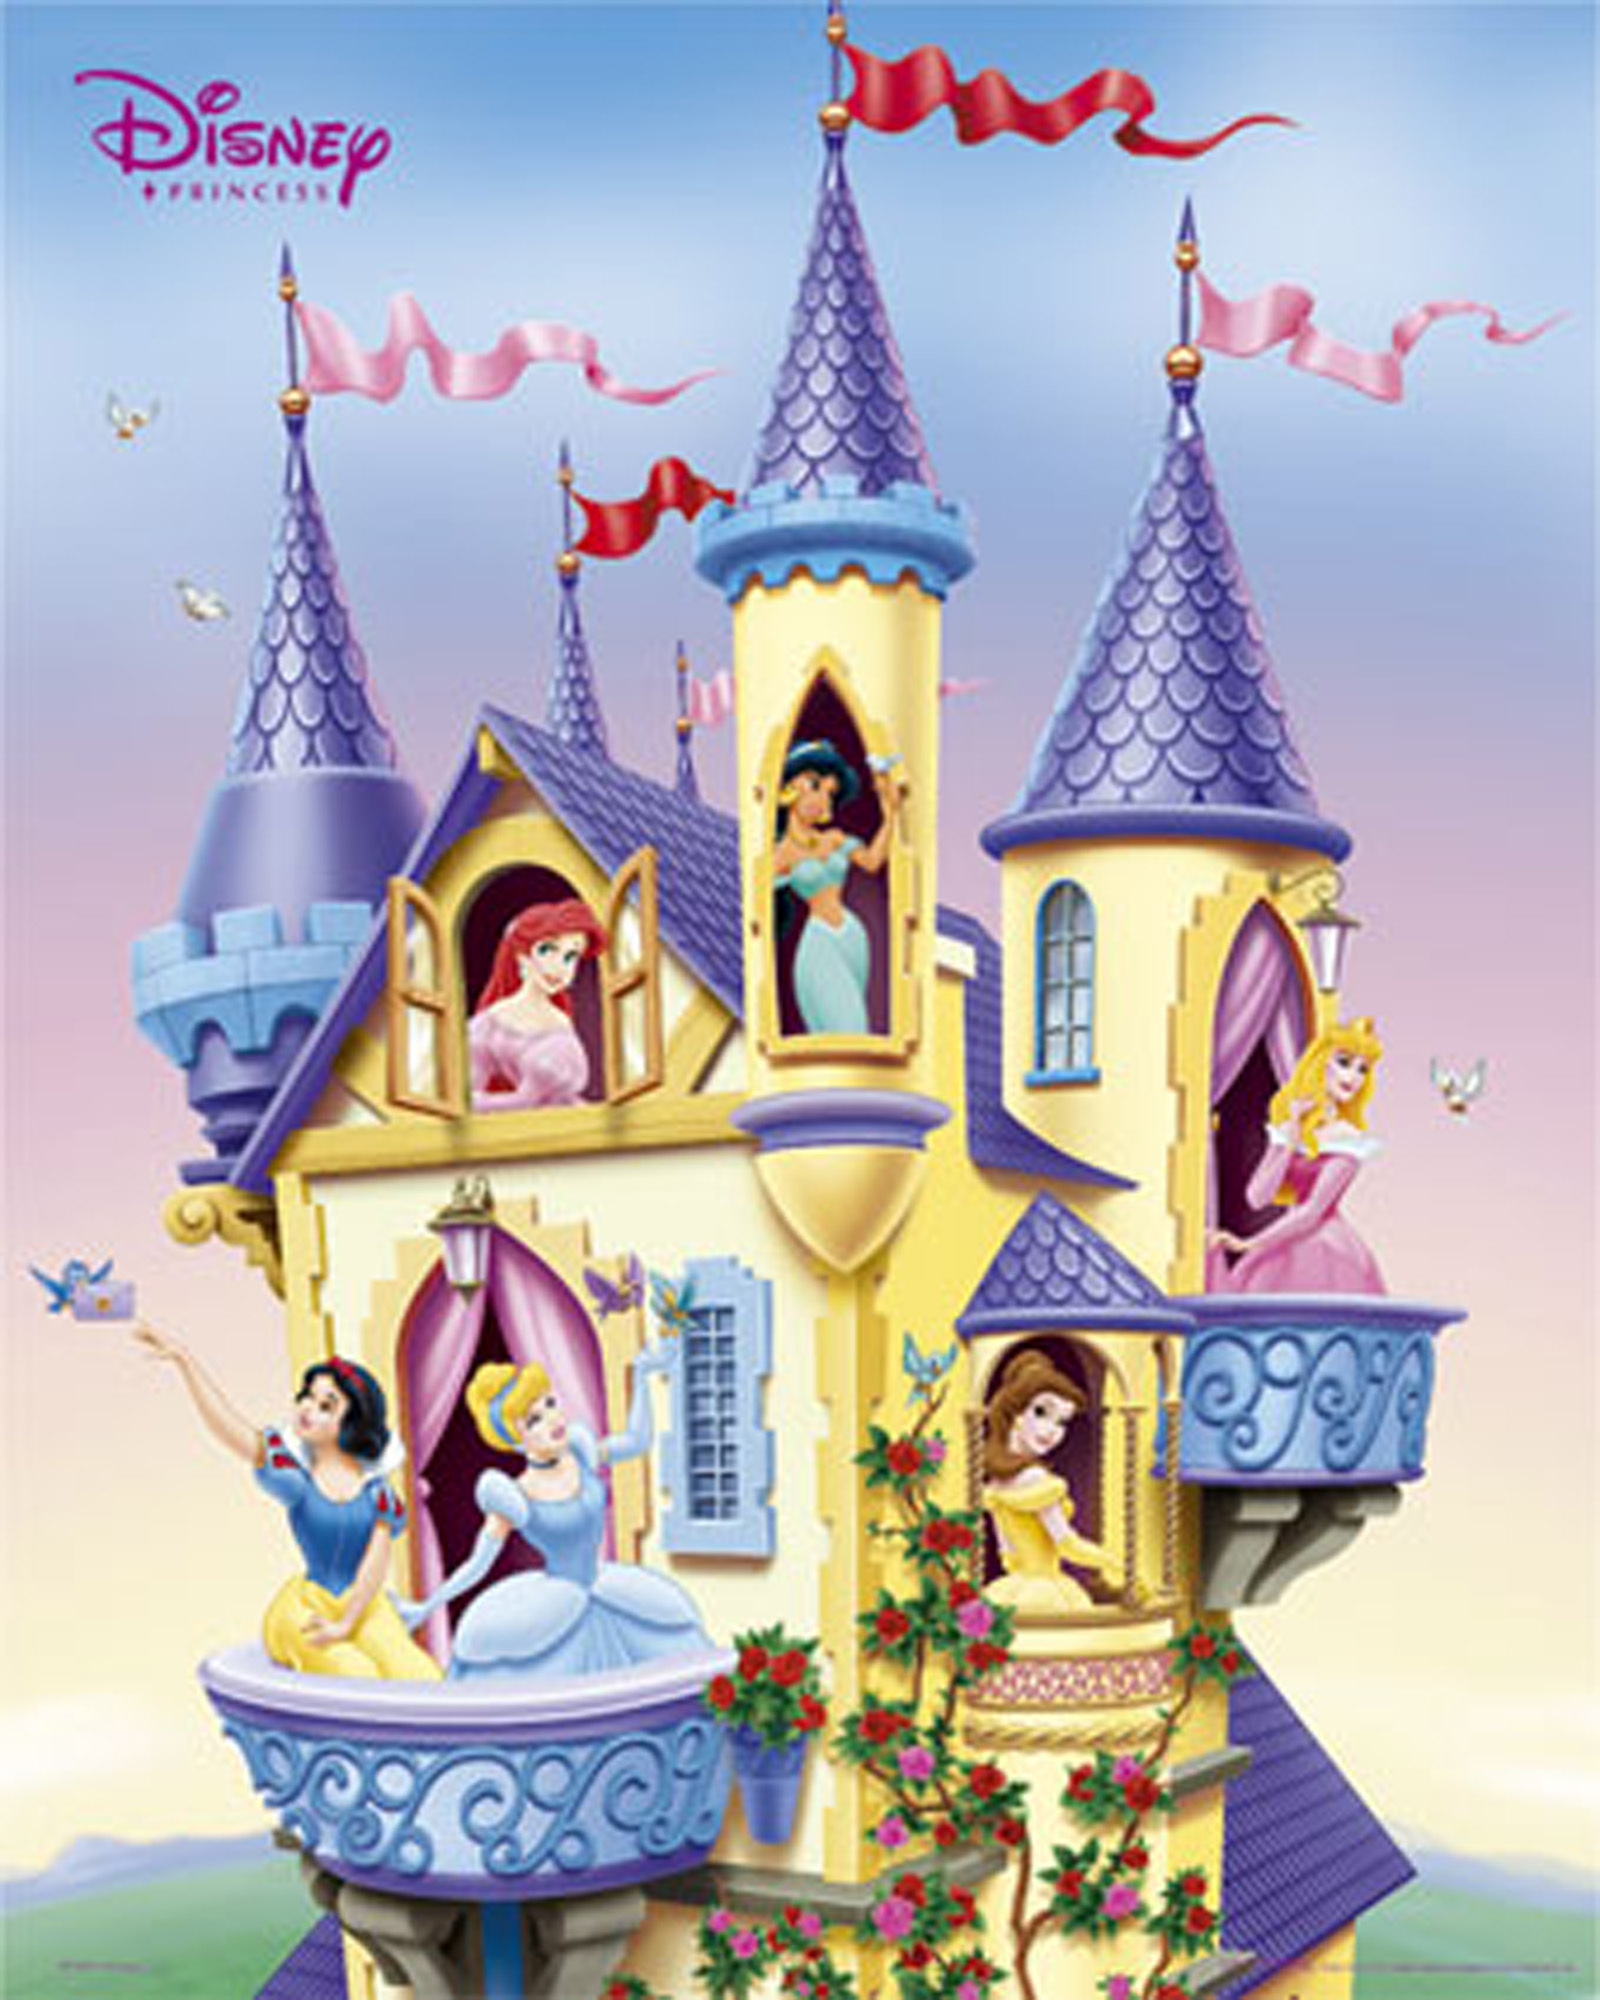 Disney princess images princesses in castle hd wallpaper and